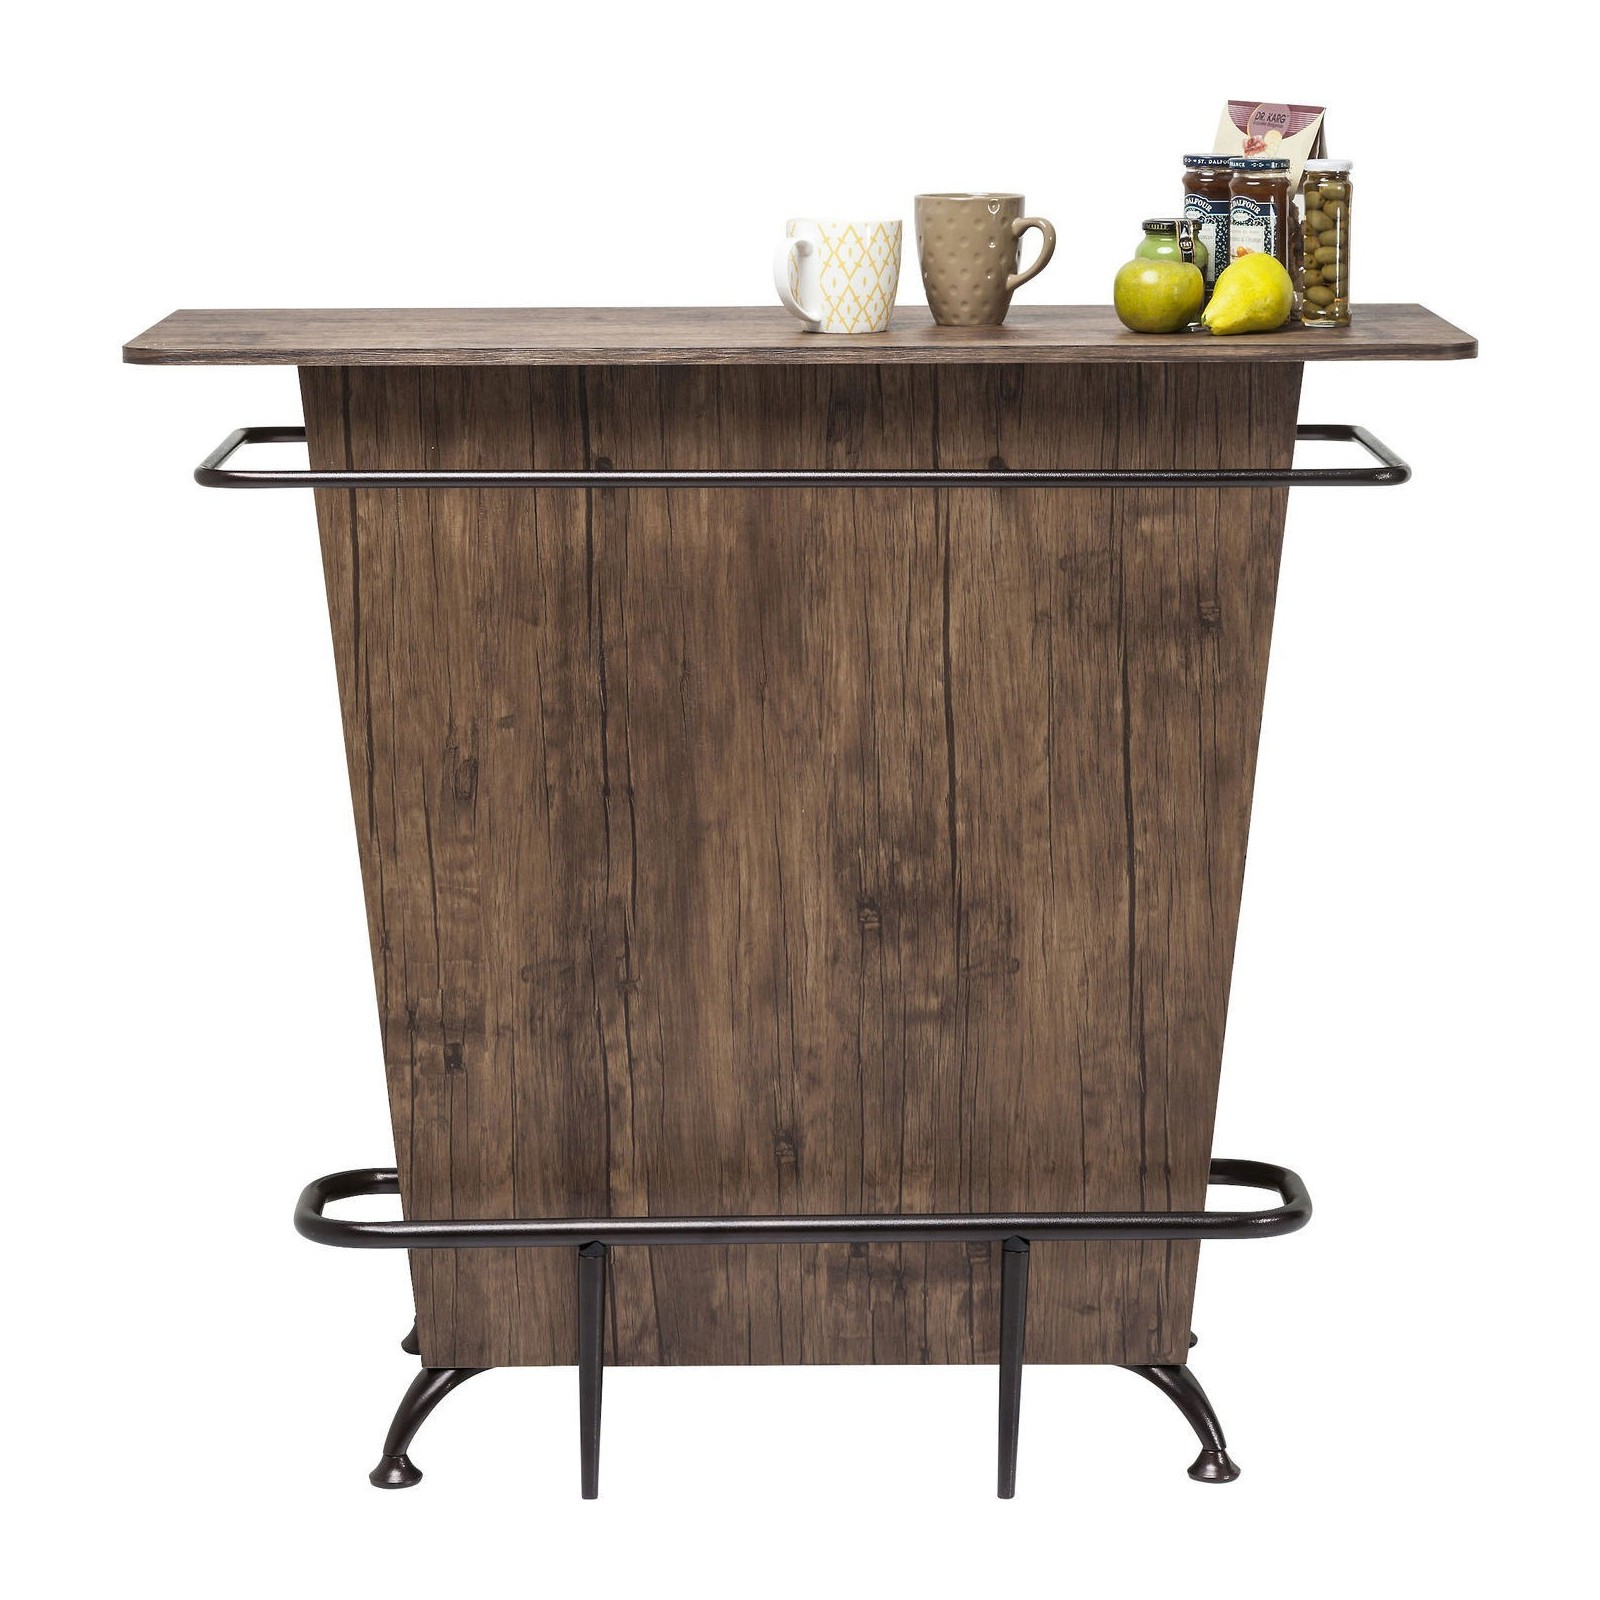 Bar rustique bois lady rock walnut kare design for Acheter meuble bar